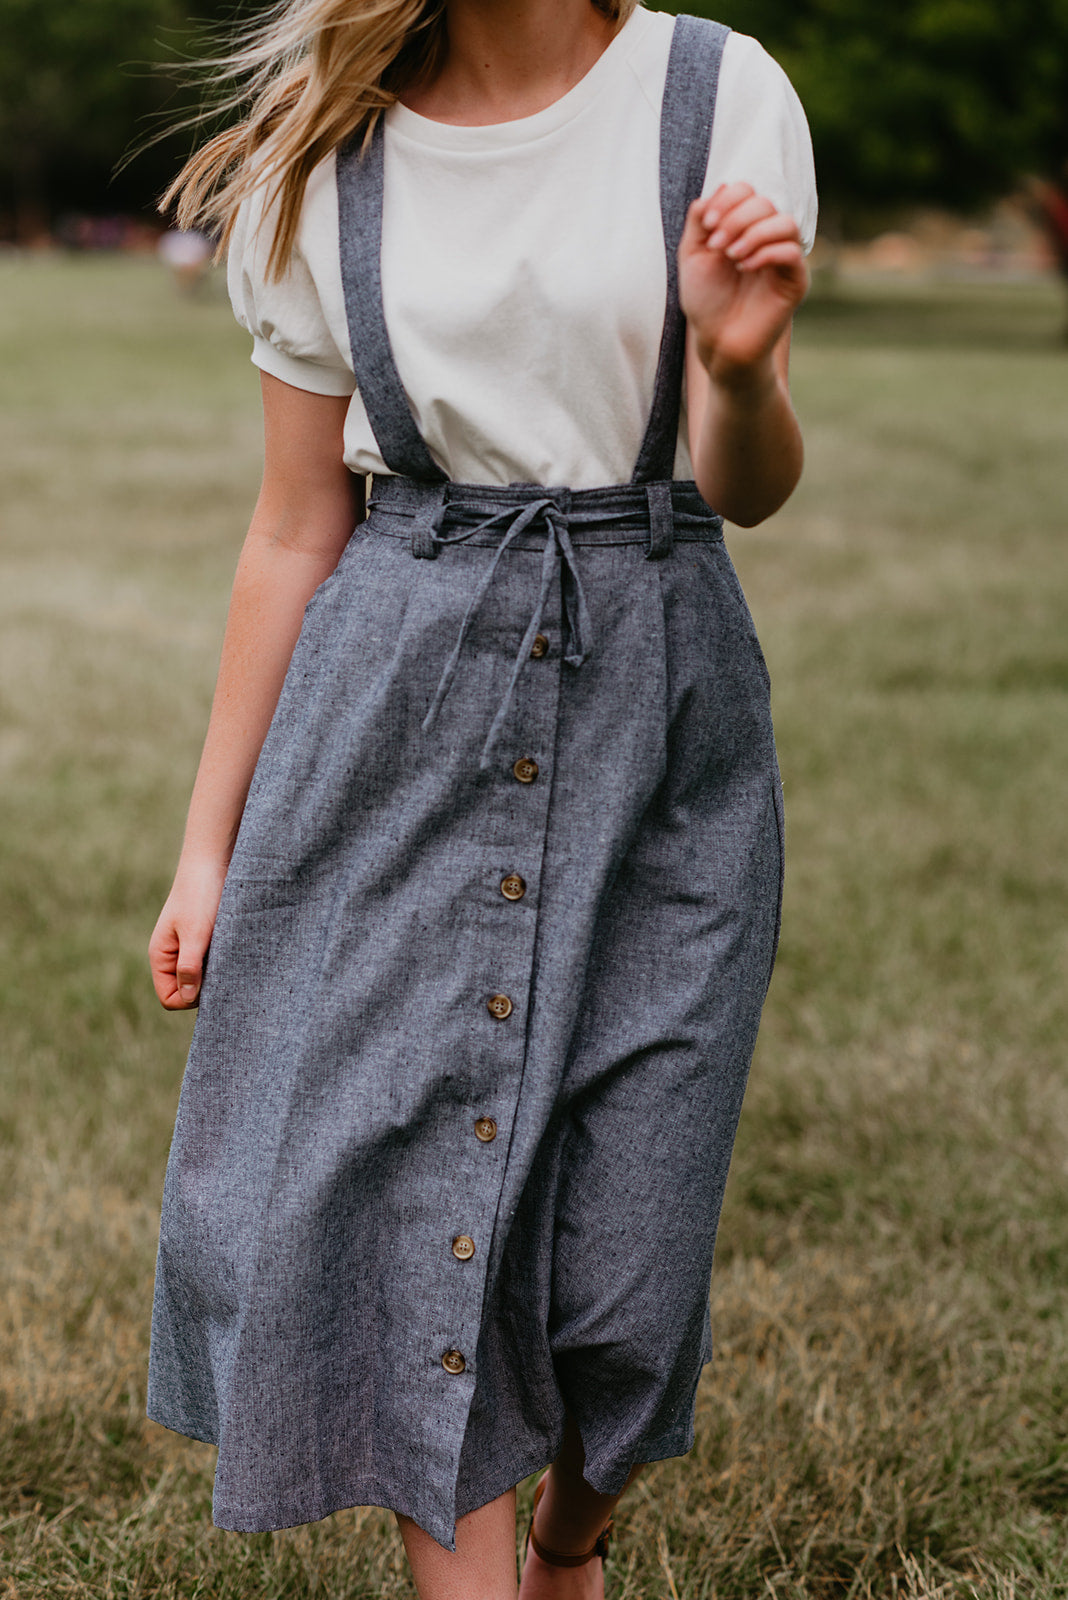 THE DARBY BUTTON DOWN OVERALL SKIRT IN DENIM